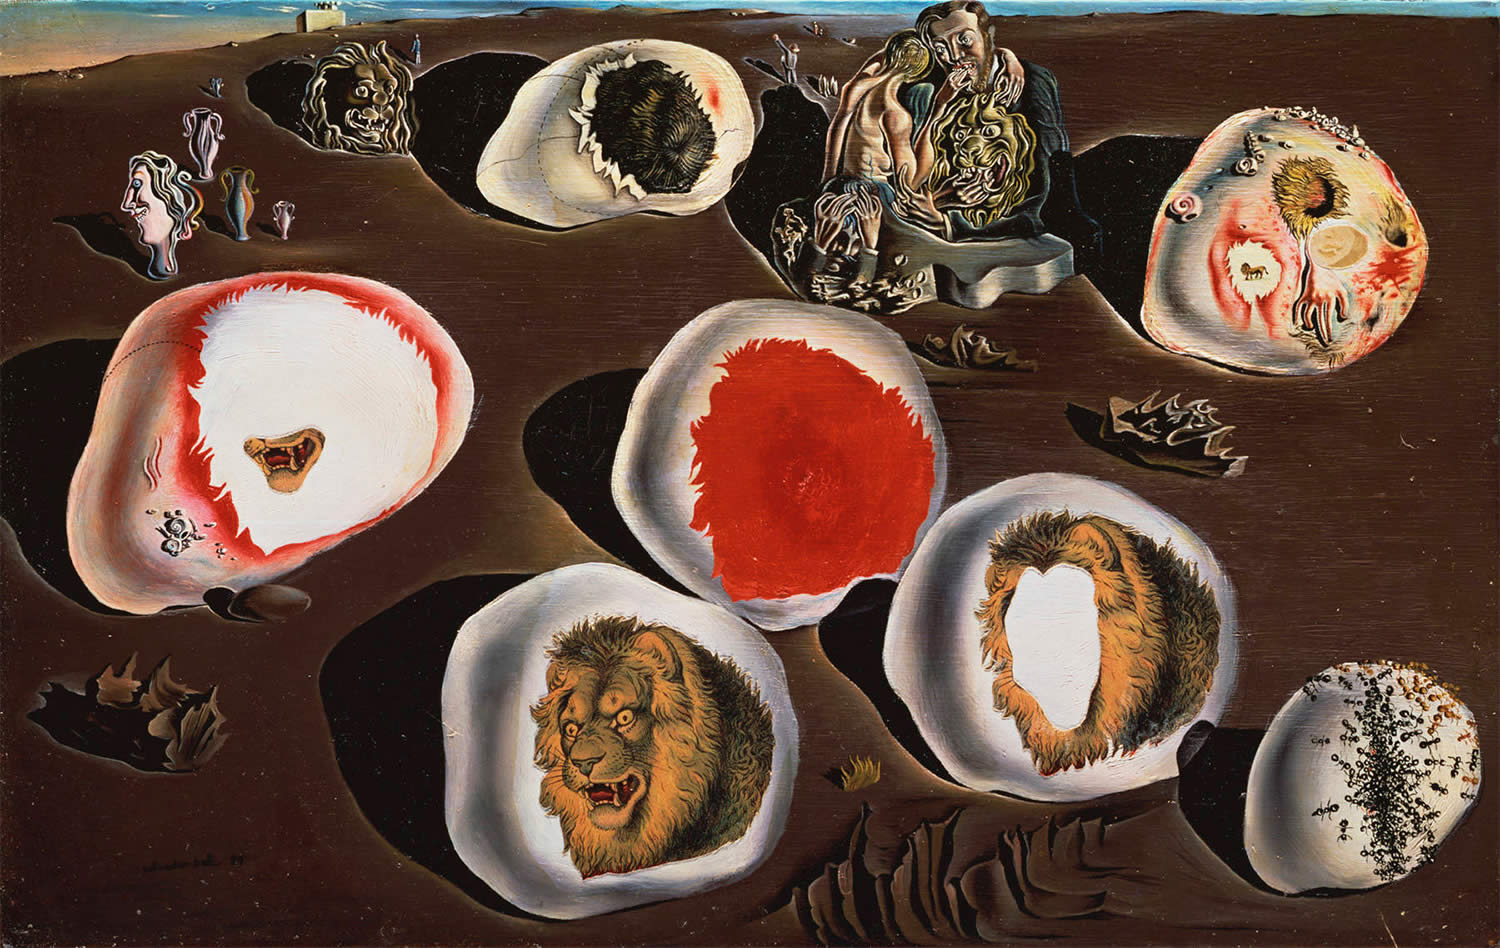 The Accommodations of Desire by salvador dali